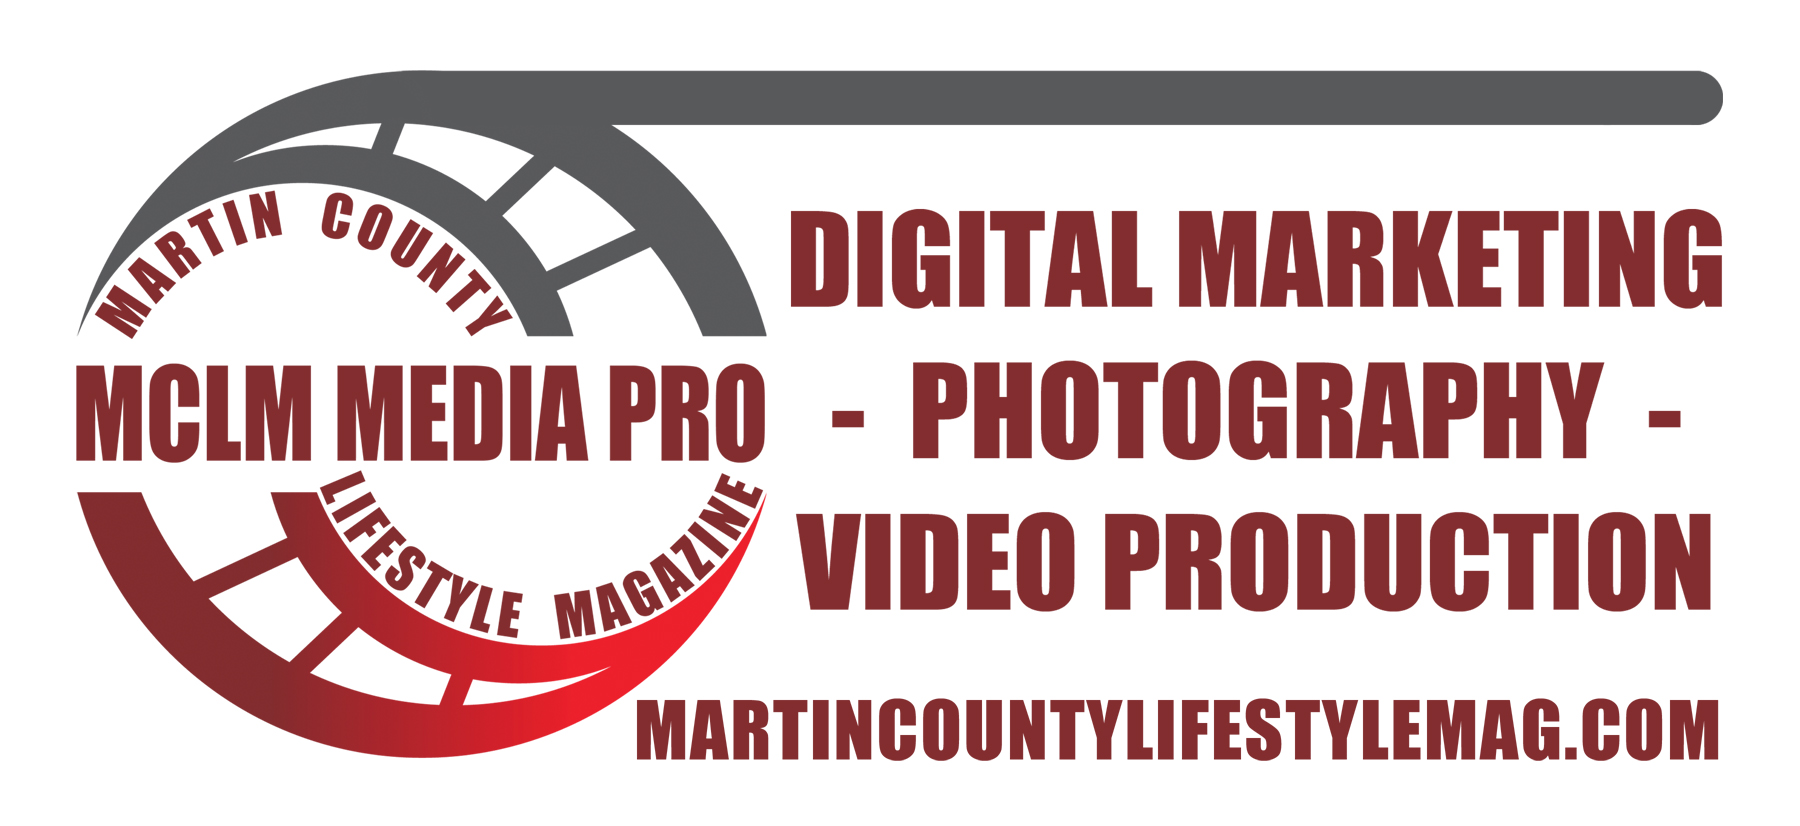 Social media Agency in Stuart, Martin County, Florida. Photography and Video Production on the Treasure Coast